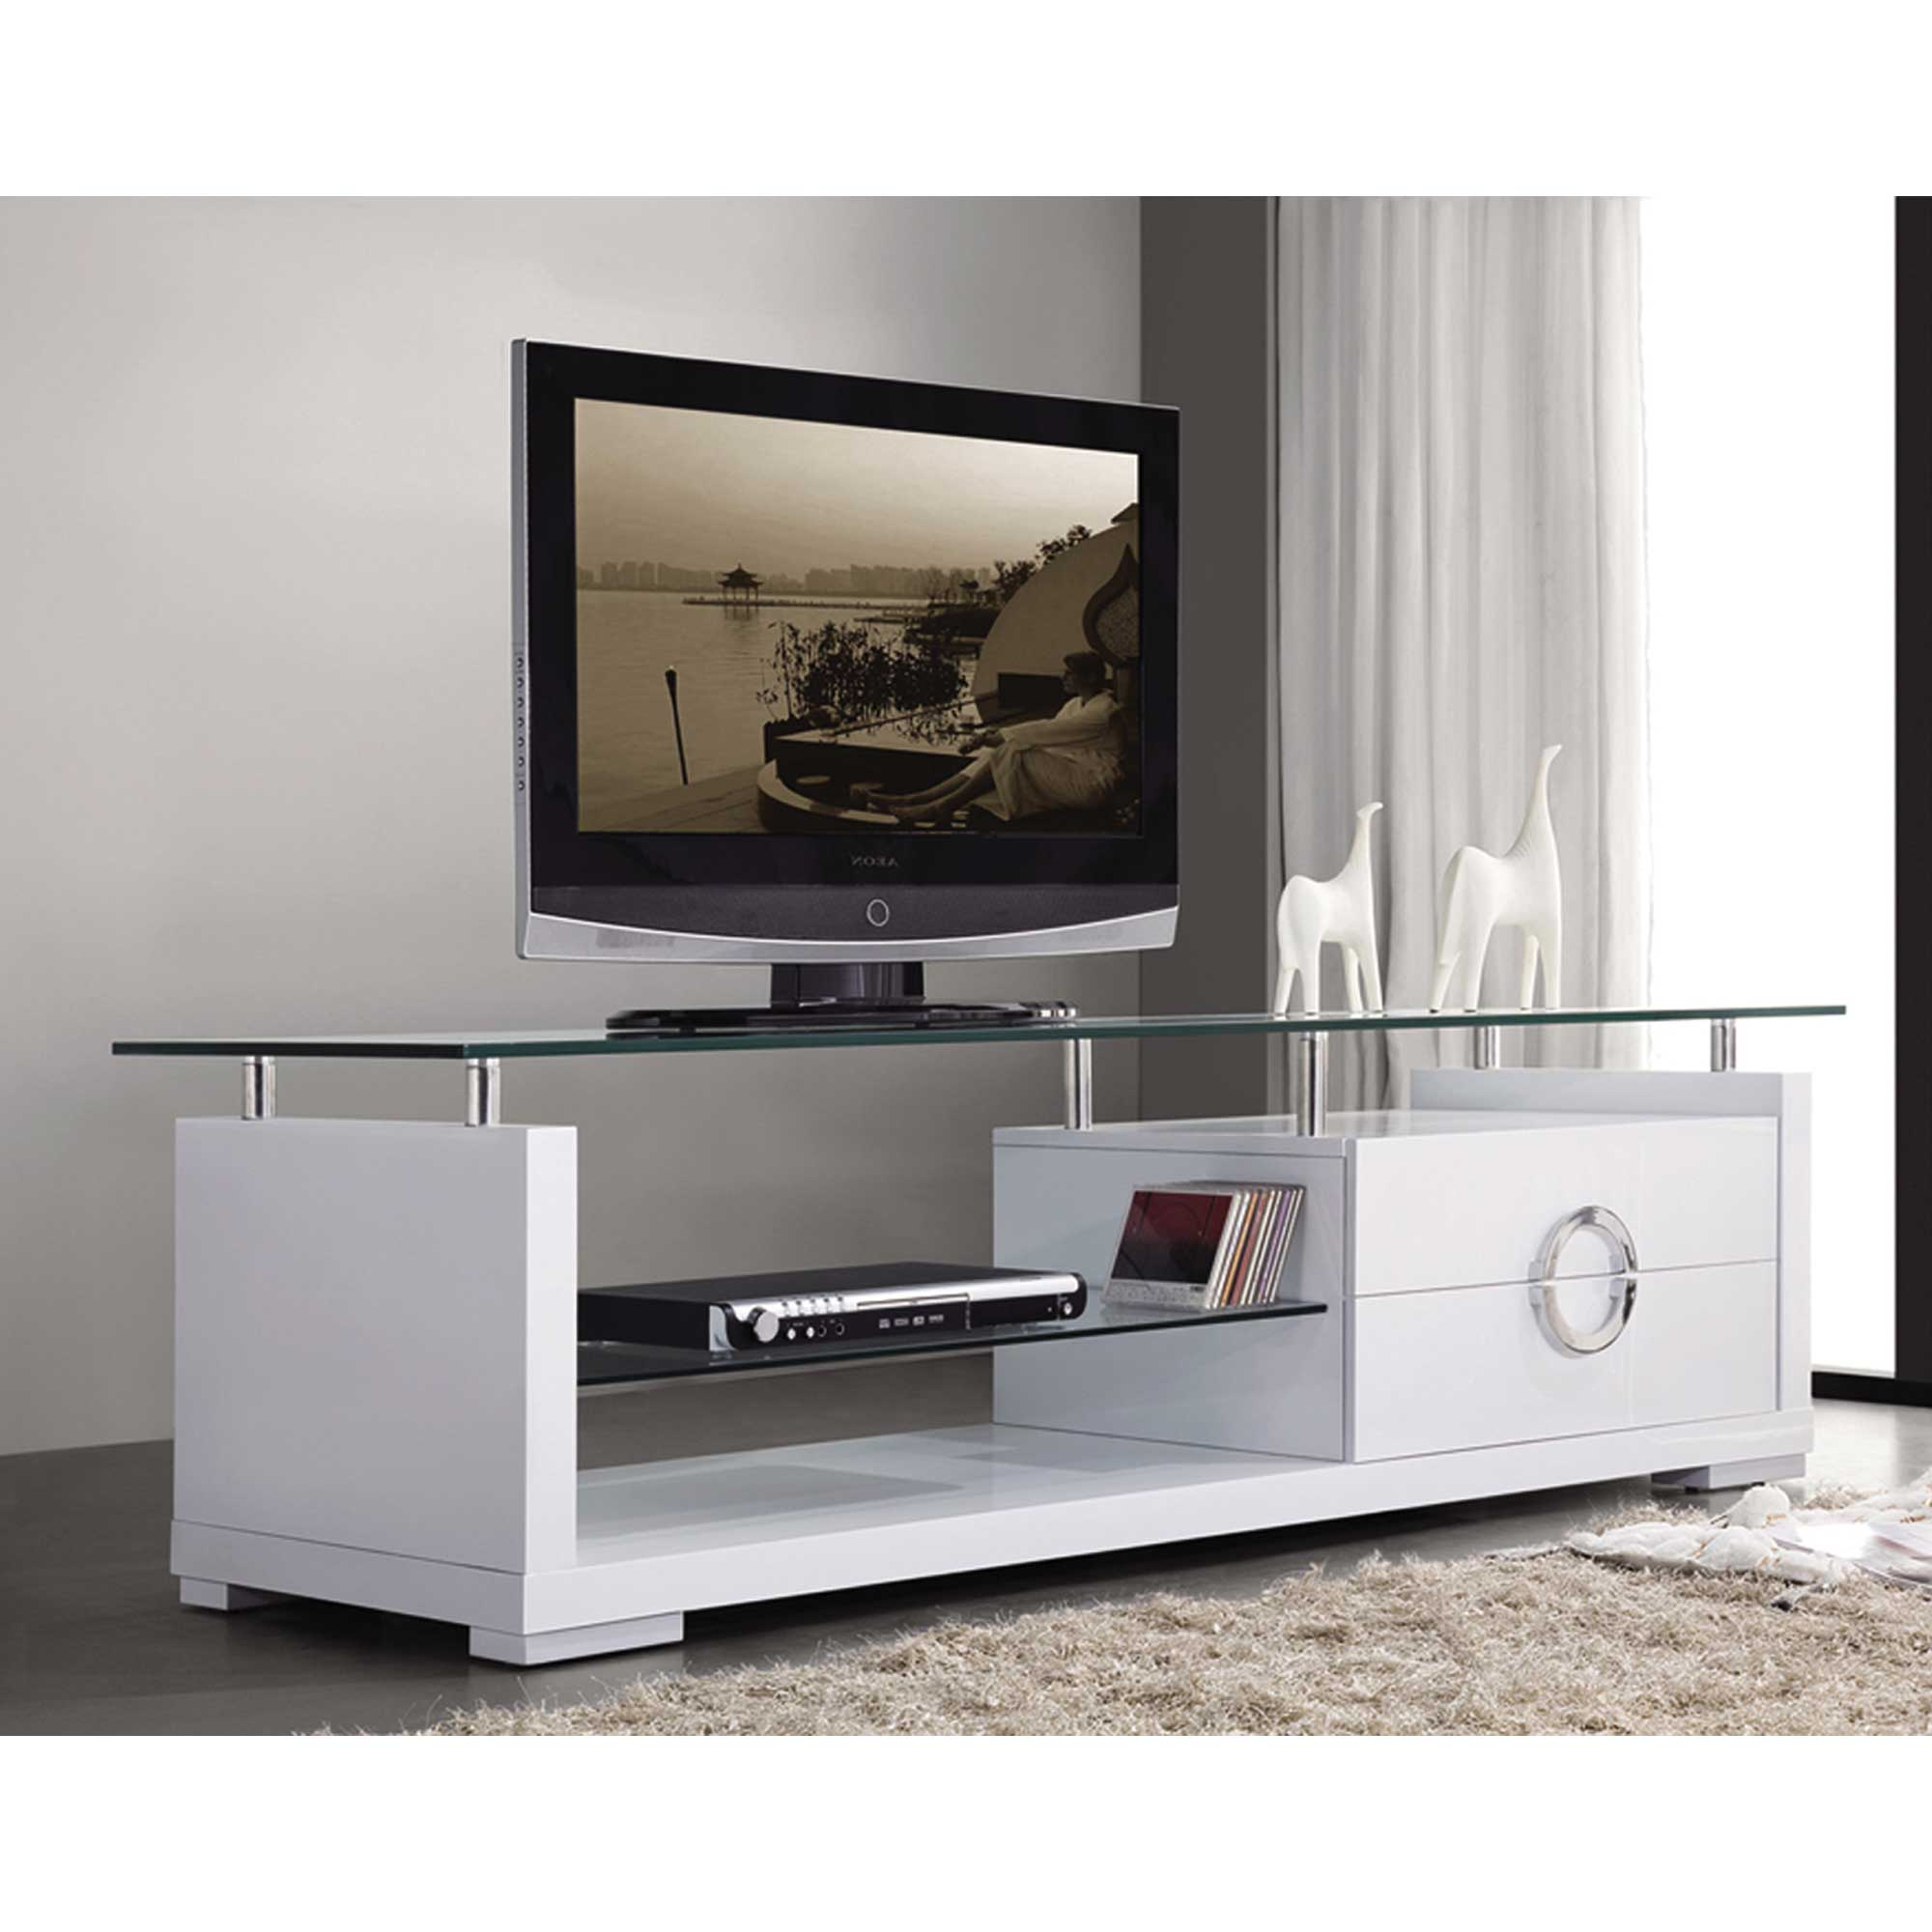 Modern White Tv Stands With Favorite Modern White Tv Stand – Home Deco (View 2 of 20)